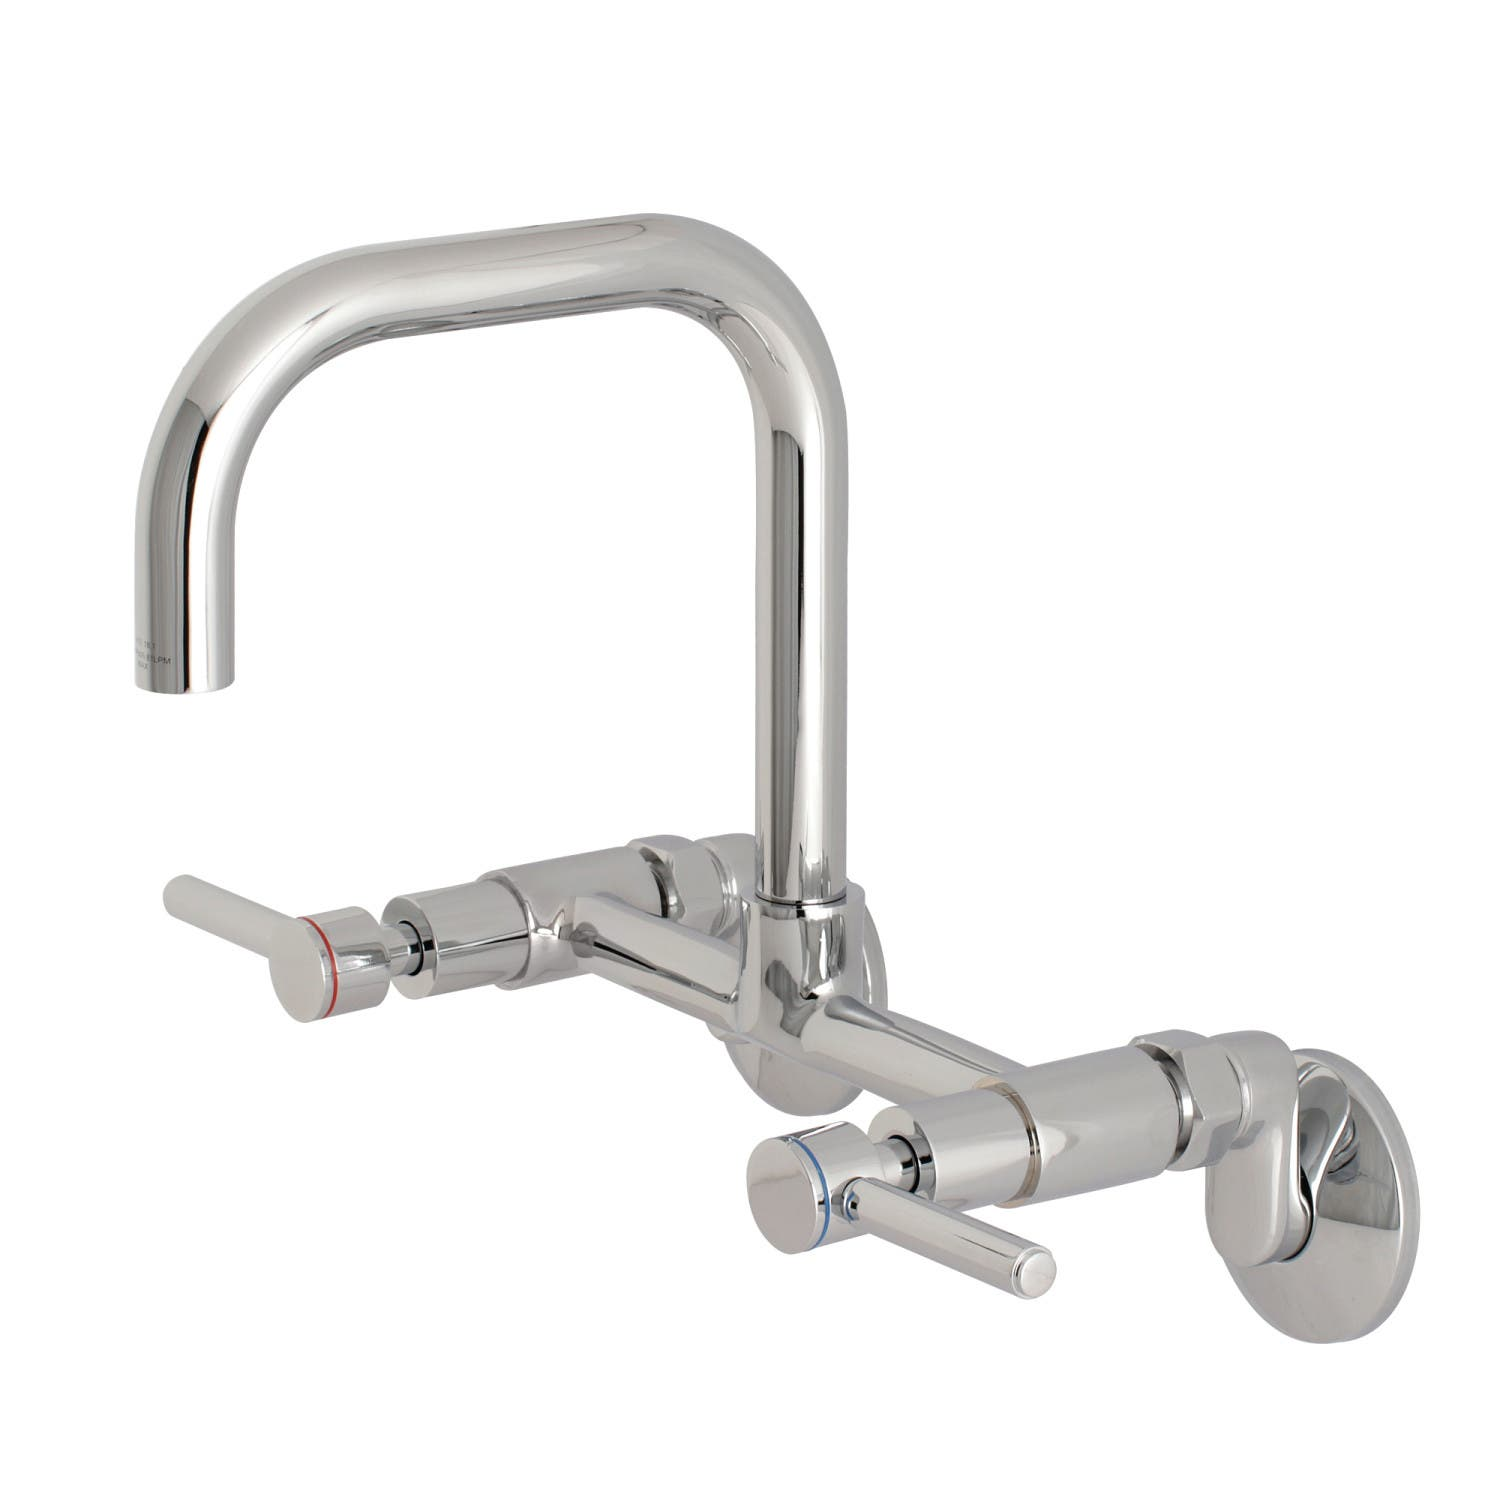 Kingston Brass KS813C Concord 8-Inch Adjustable Center Wall Mount Kitchen  Faucet, Polished Chrome